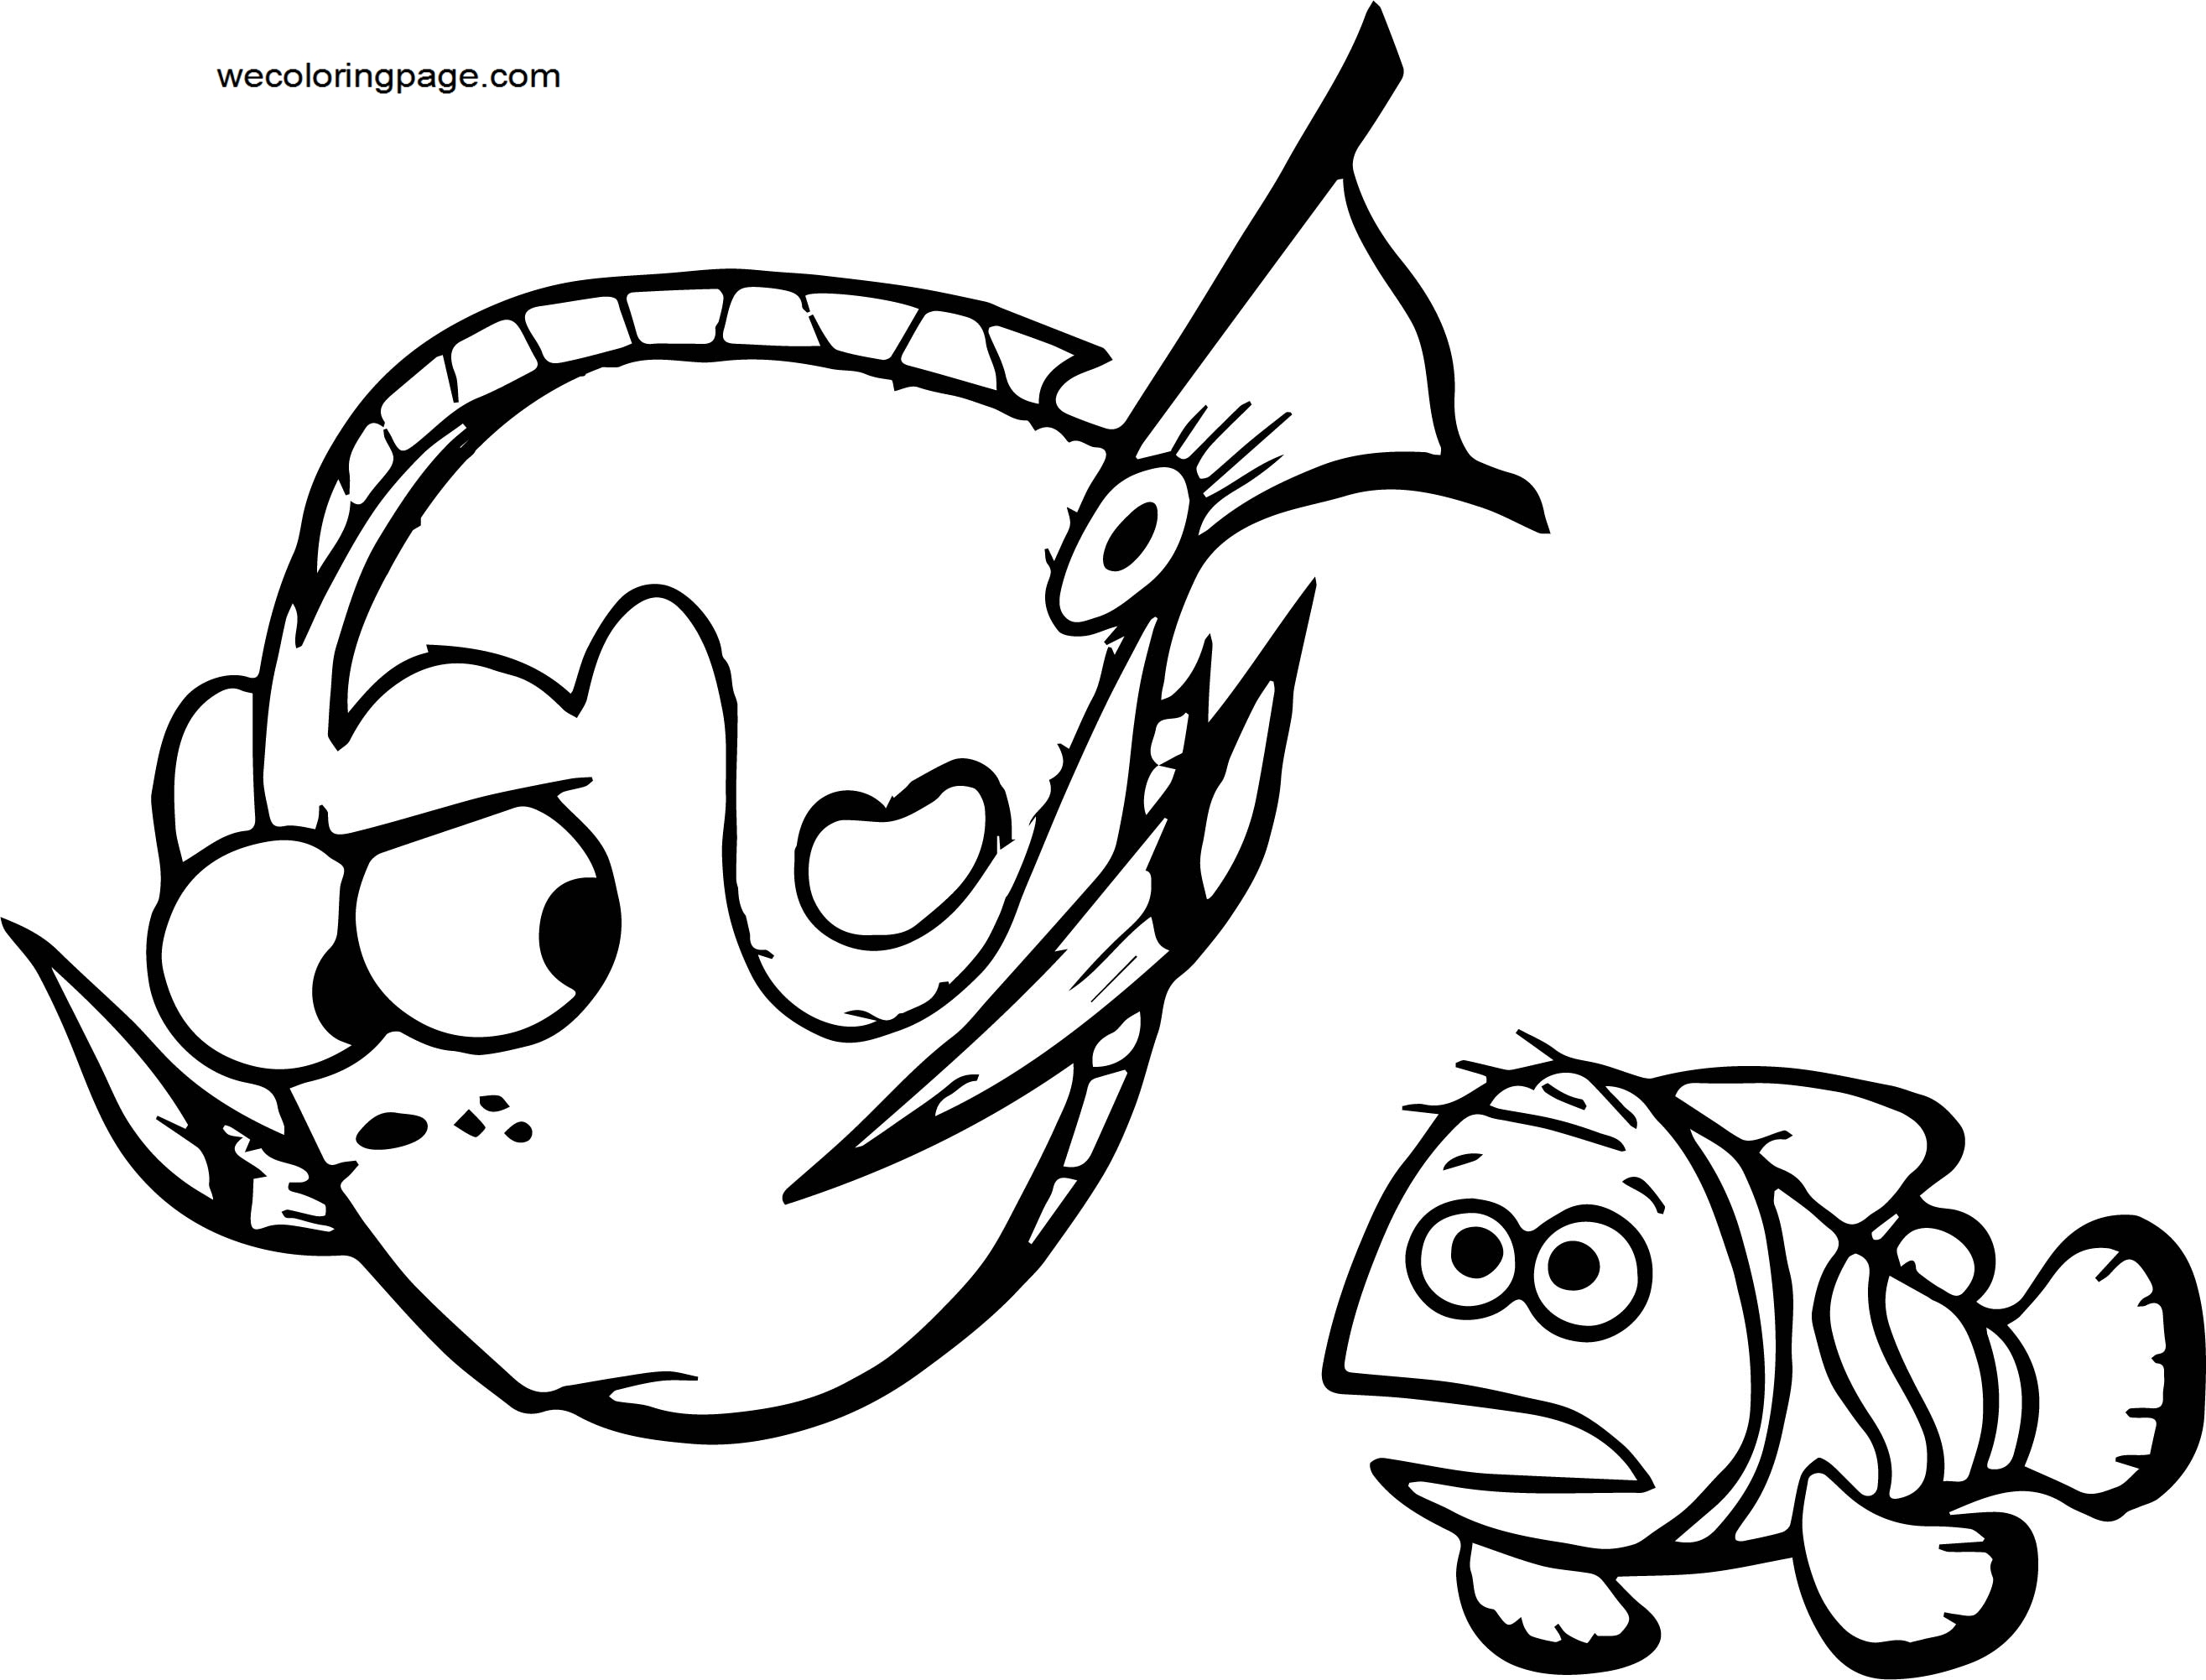 Disney Finding Nemofish swim Coloring Pages